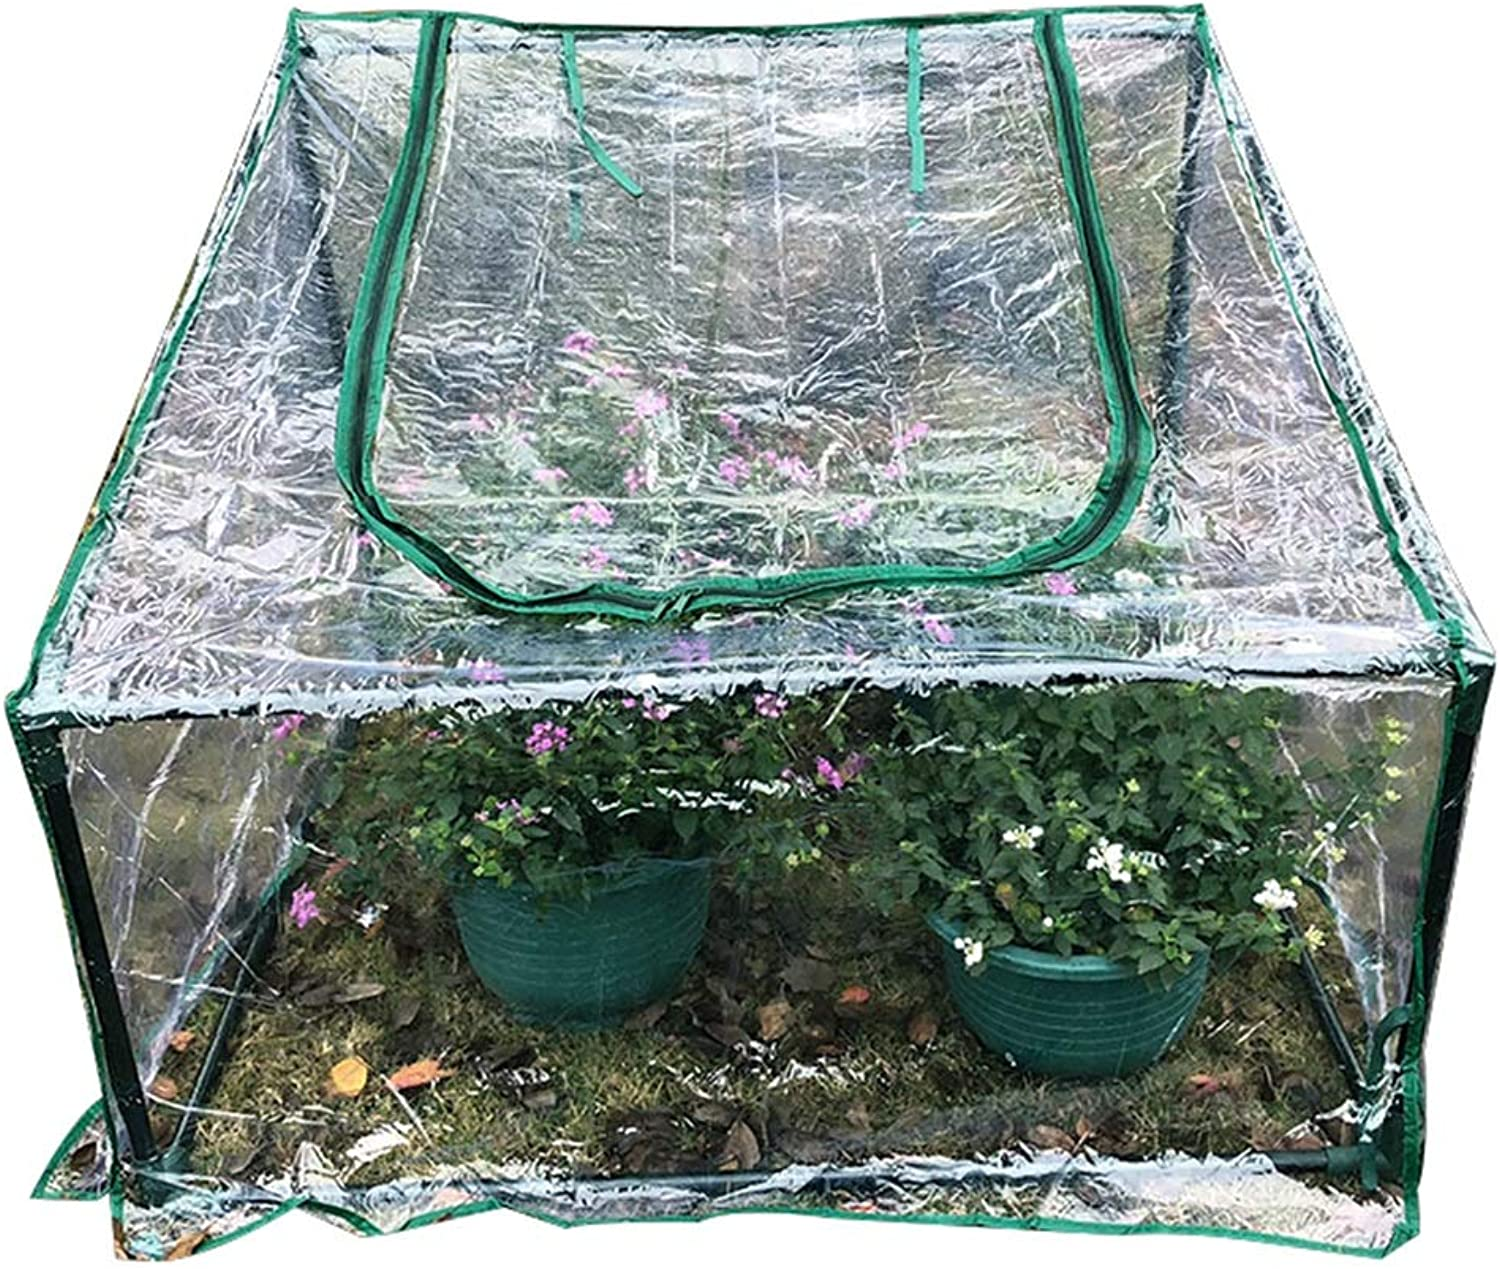 HAIPENG Mini Greenhouse Garden Growhouse Hothouse Plant Growing Portable Plastic PVC Cover Cold Frames Balcony (color   Clear, Size   90x90cm)